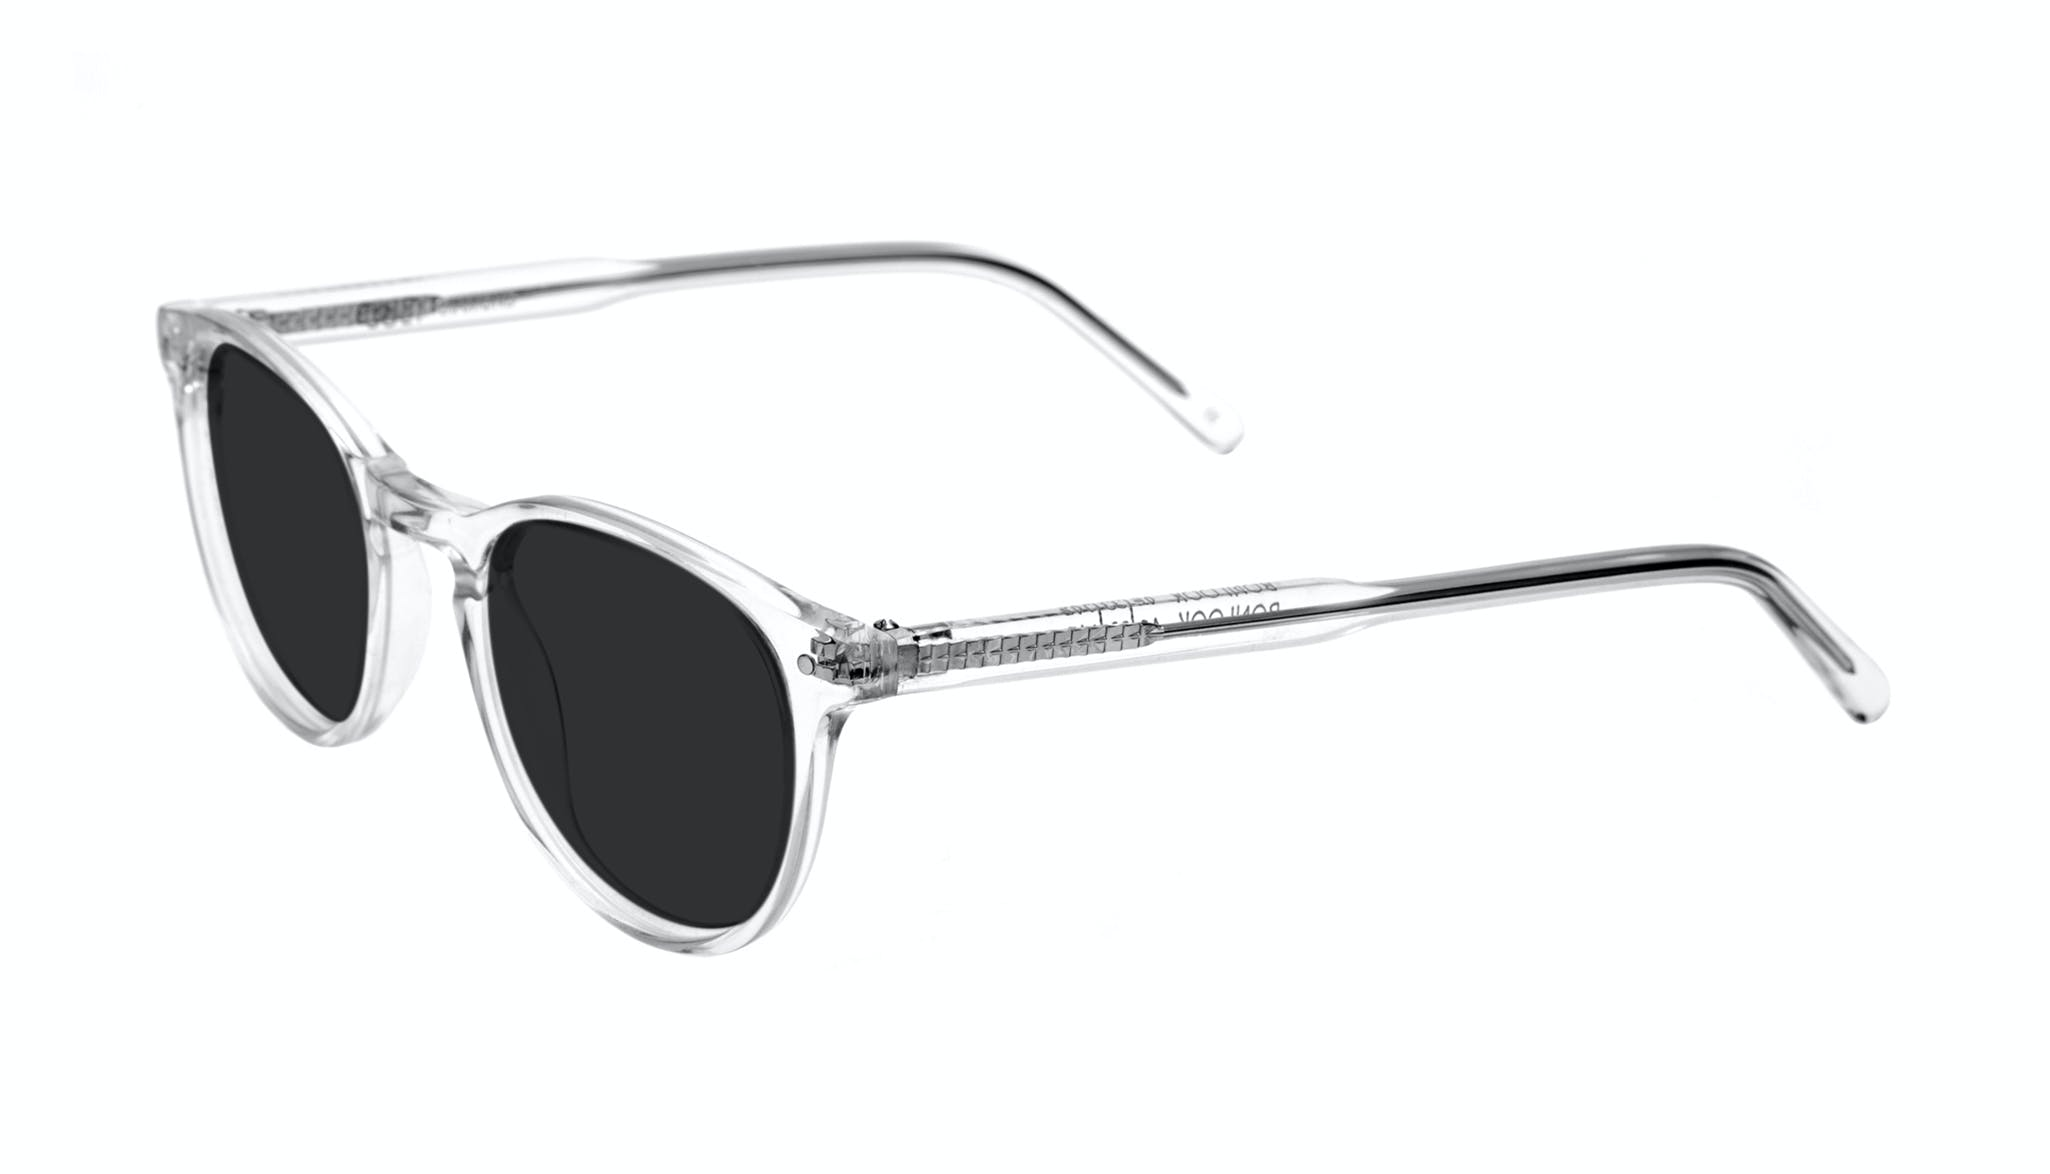 Affordable Fashion Glasses Round Sunglasses Men Cult Diamond Tilt